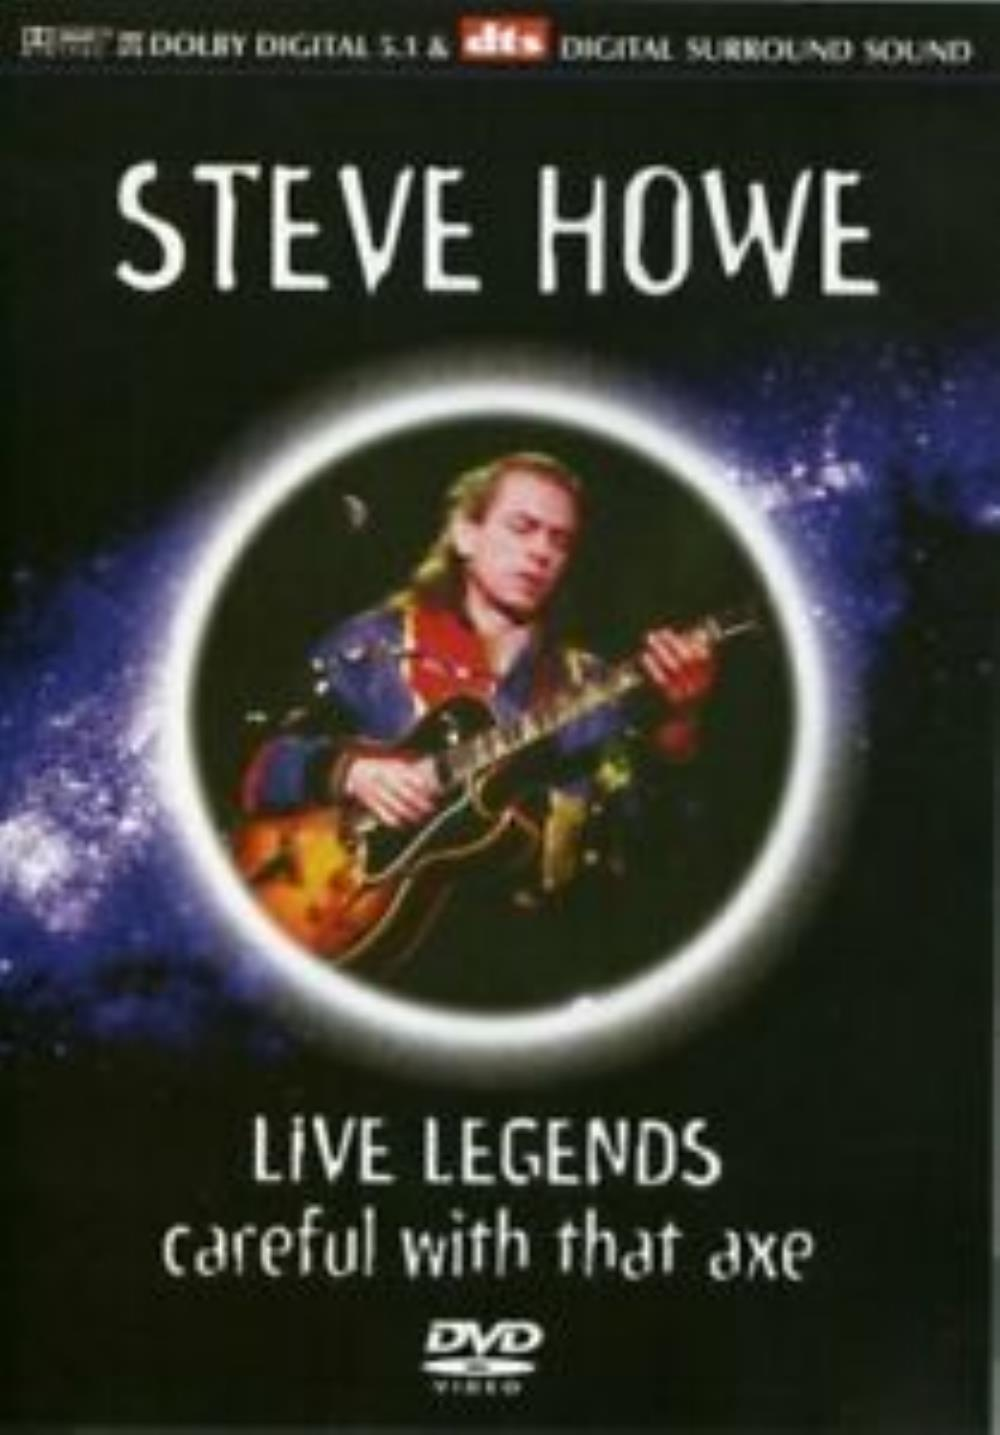 Steve Howe - Live Legends - Careful With That Axe DVD (album) cover